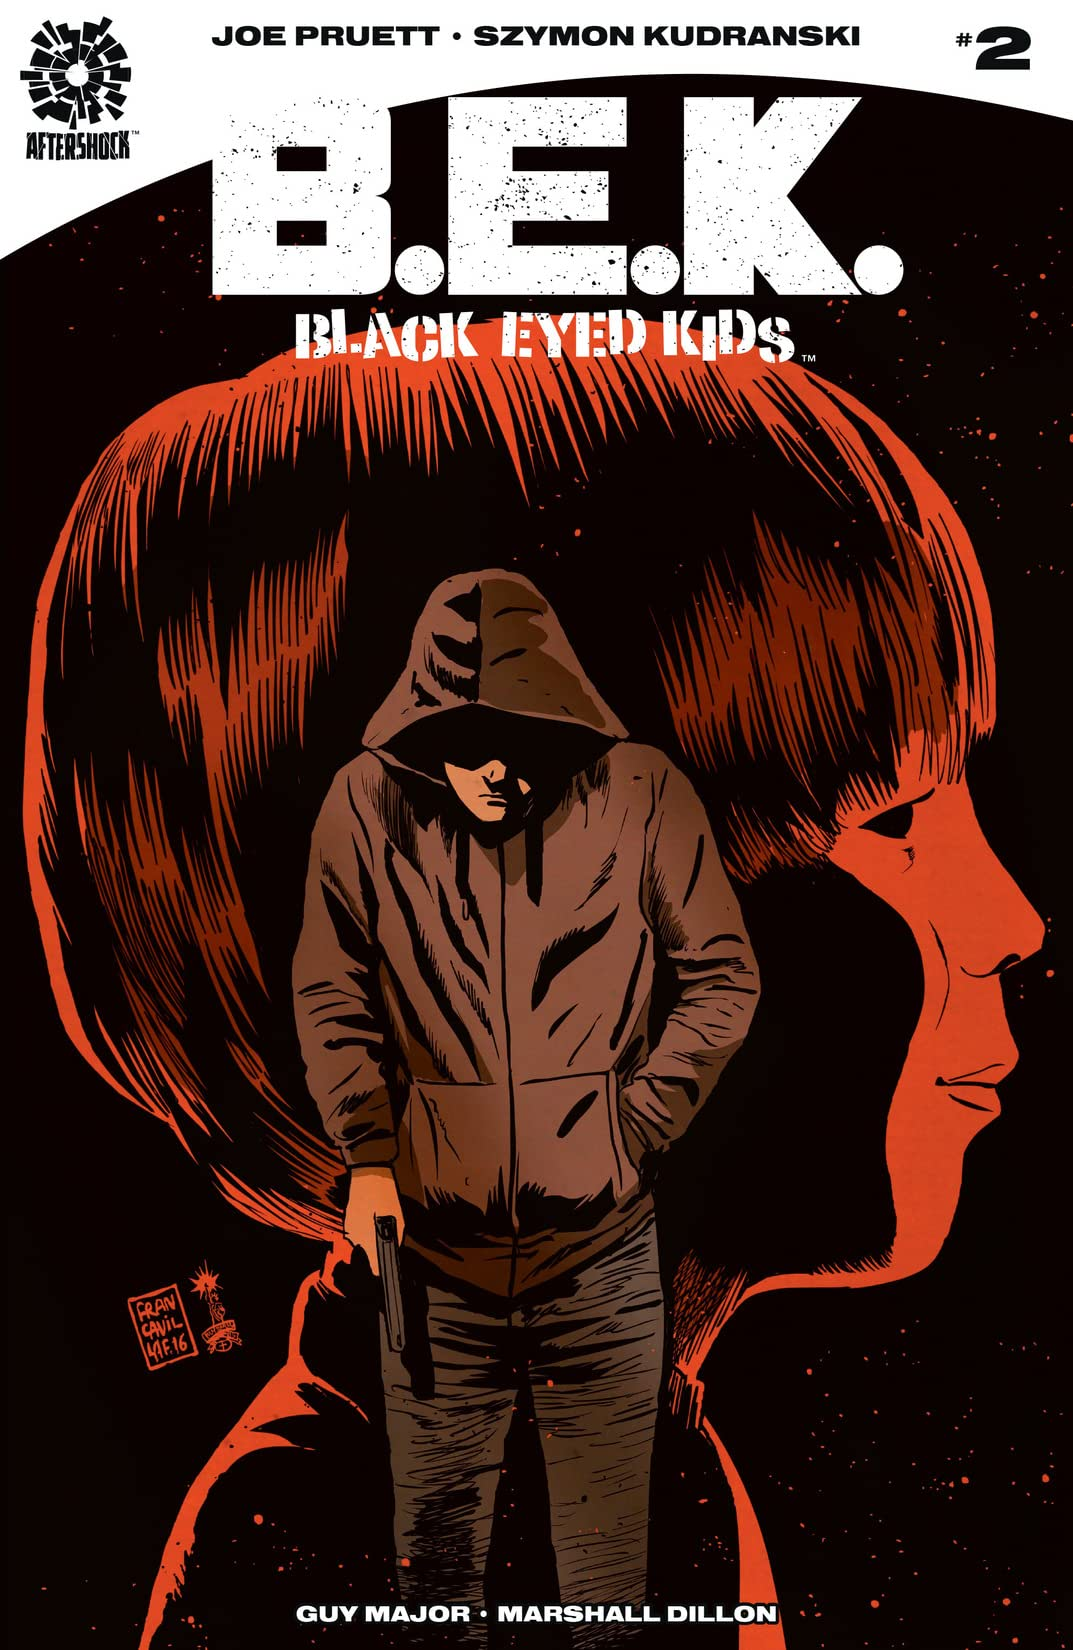 Black Eyed Kids #2